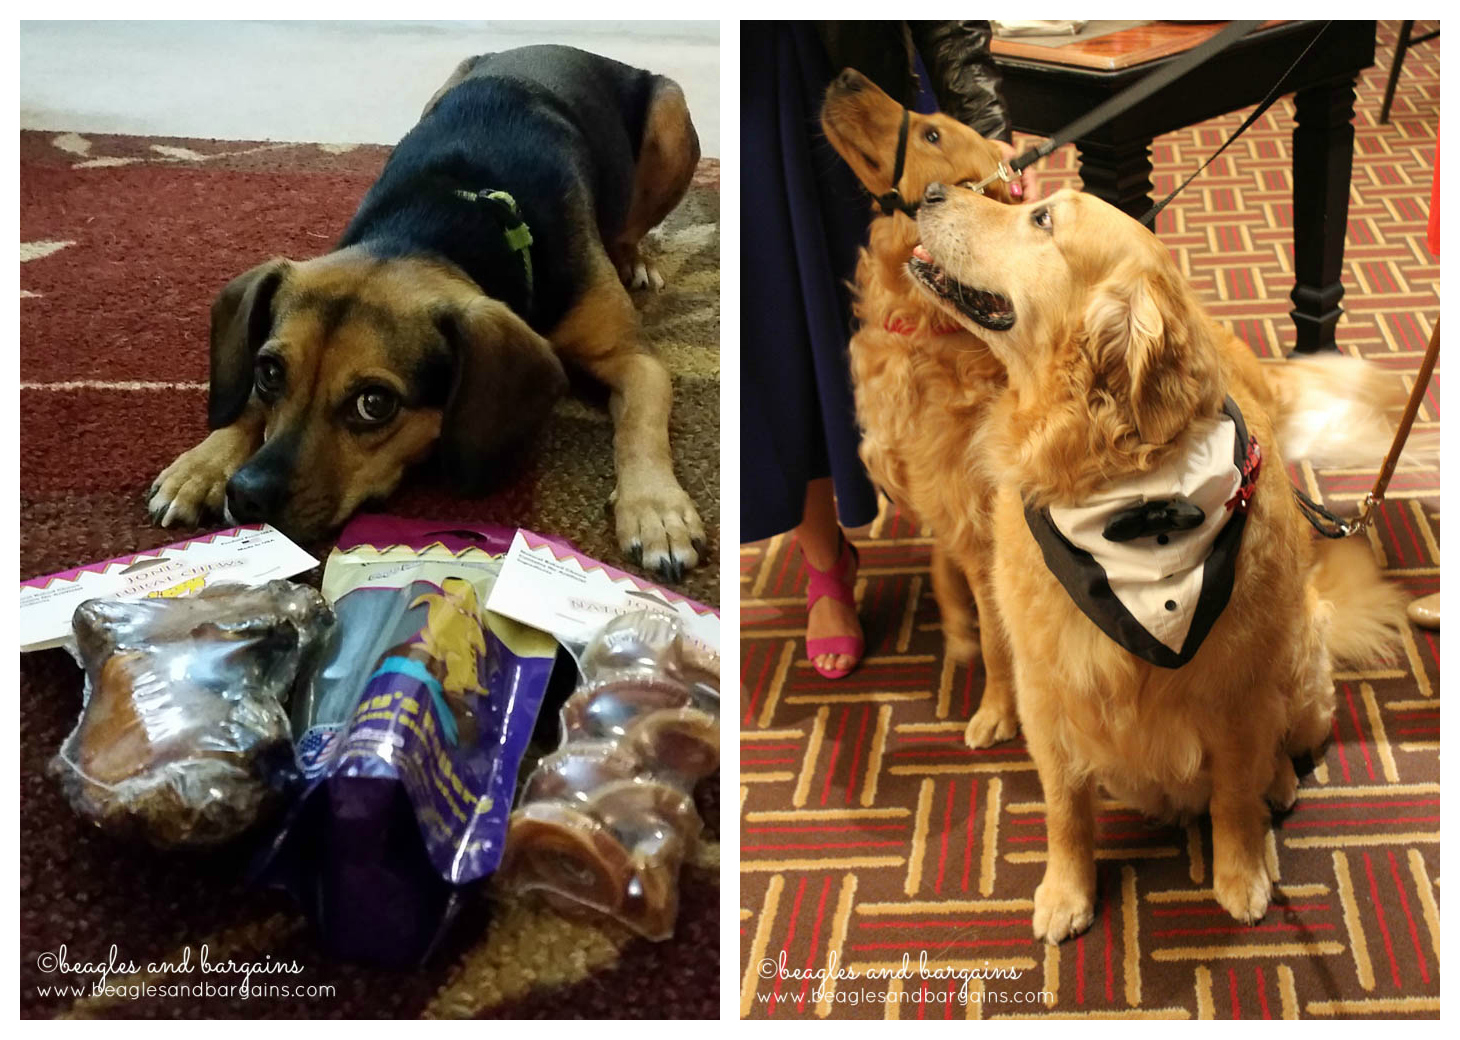 Our friends, Harley and Charlie, from My Dog Likes gifted Luna some yummy Jones Natural Chews!